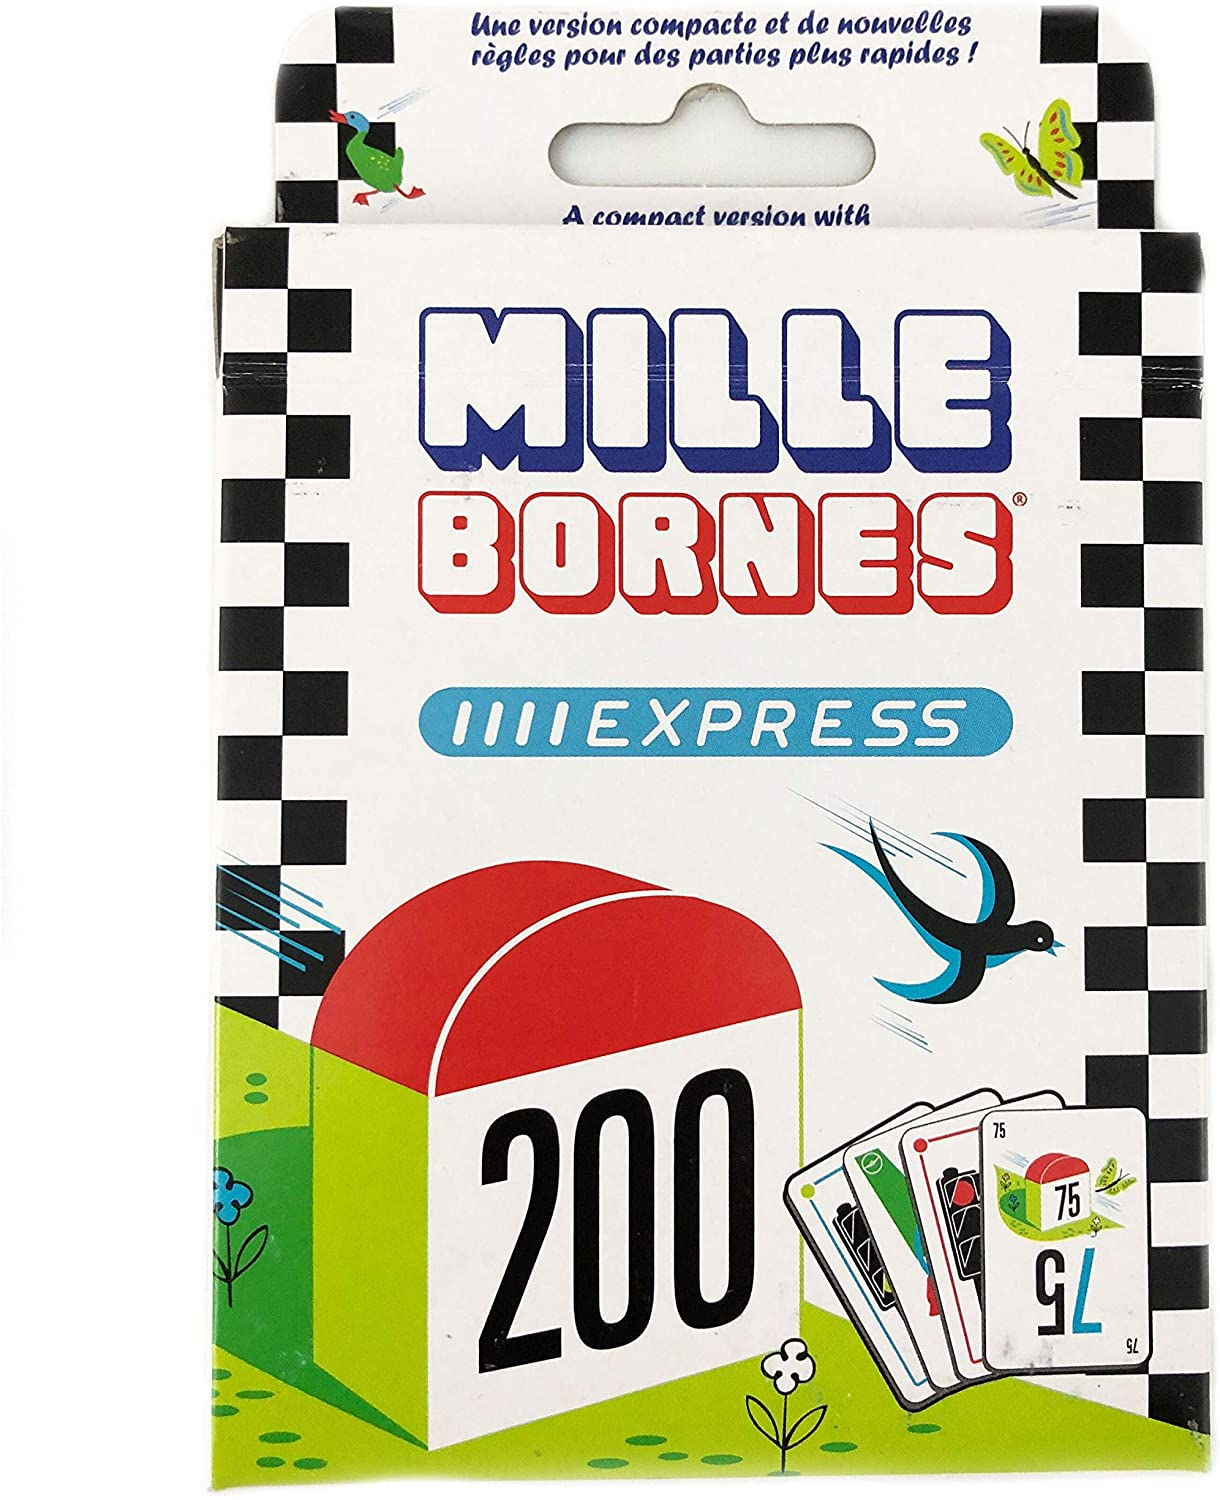 Cg Mille Bornes Express | GameKnight Games